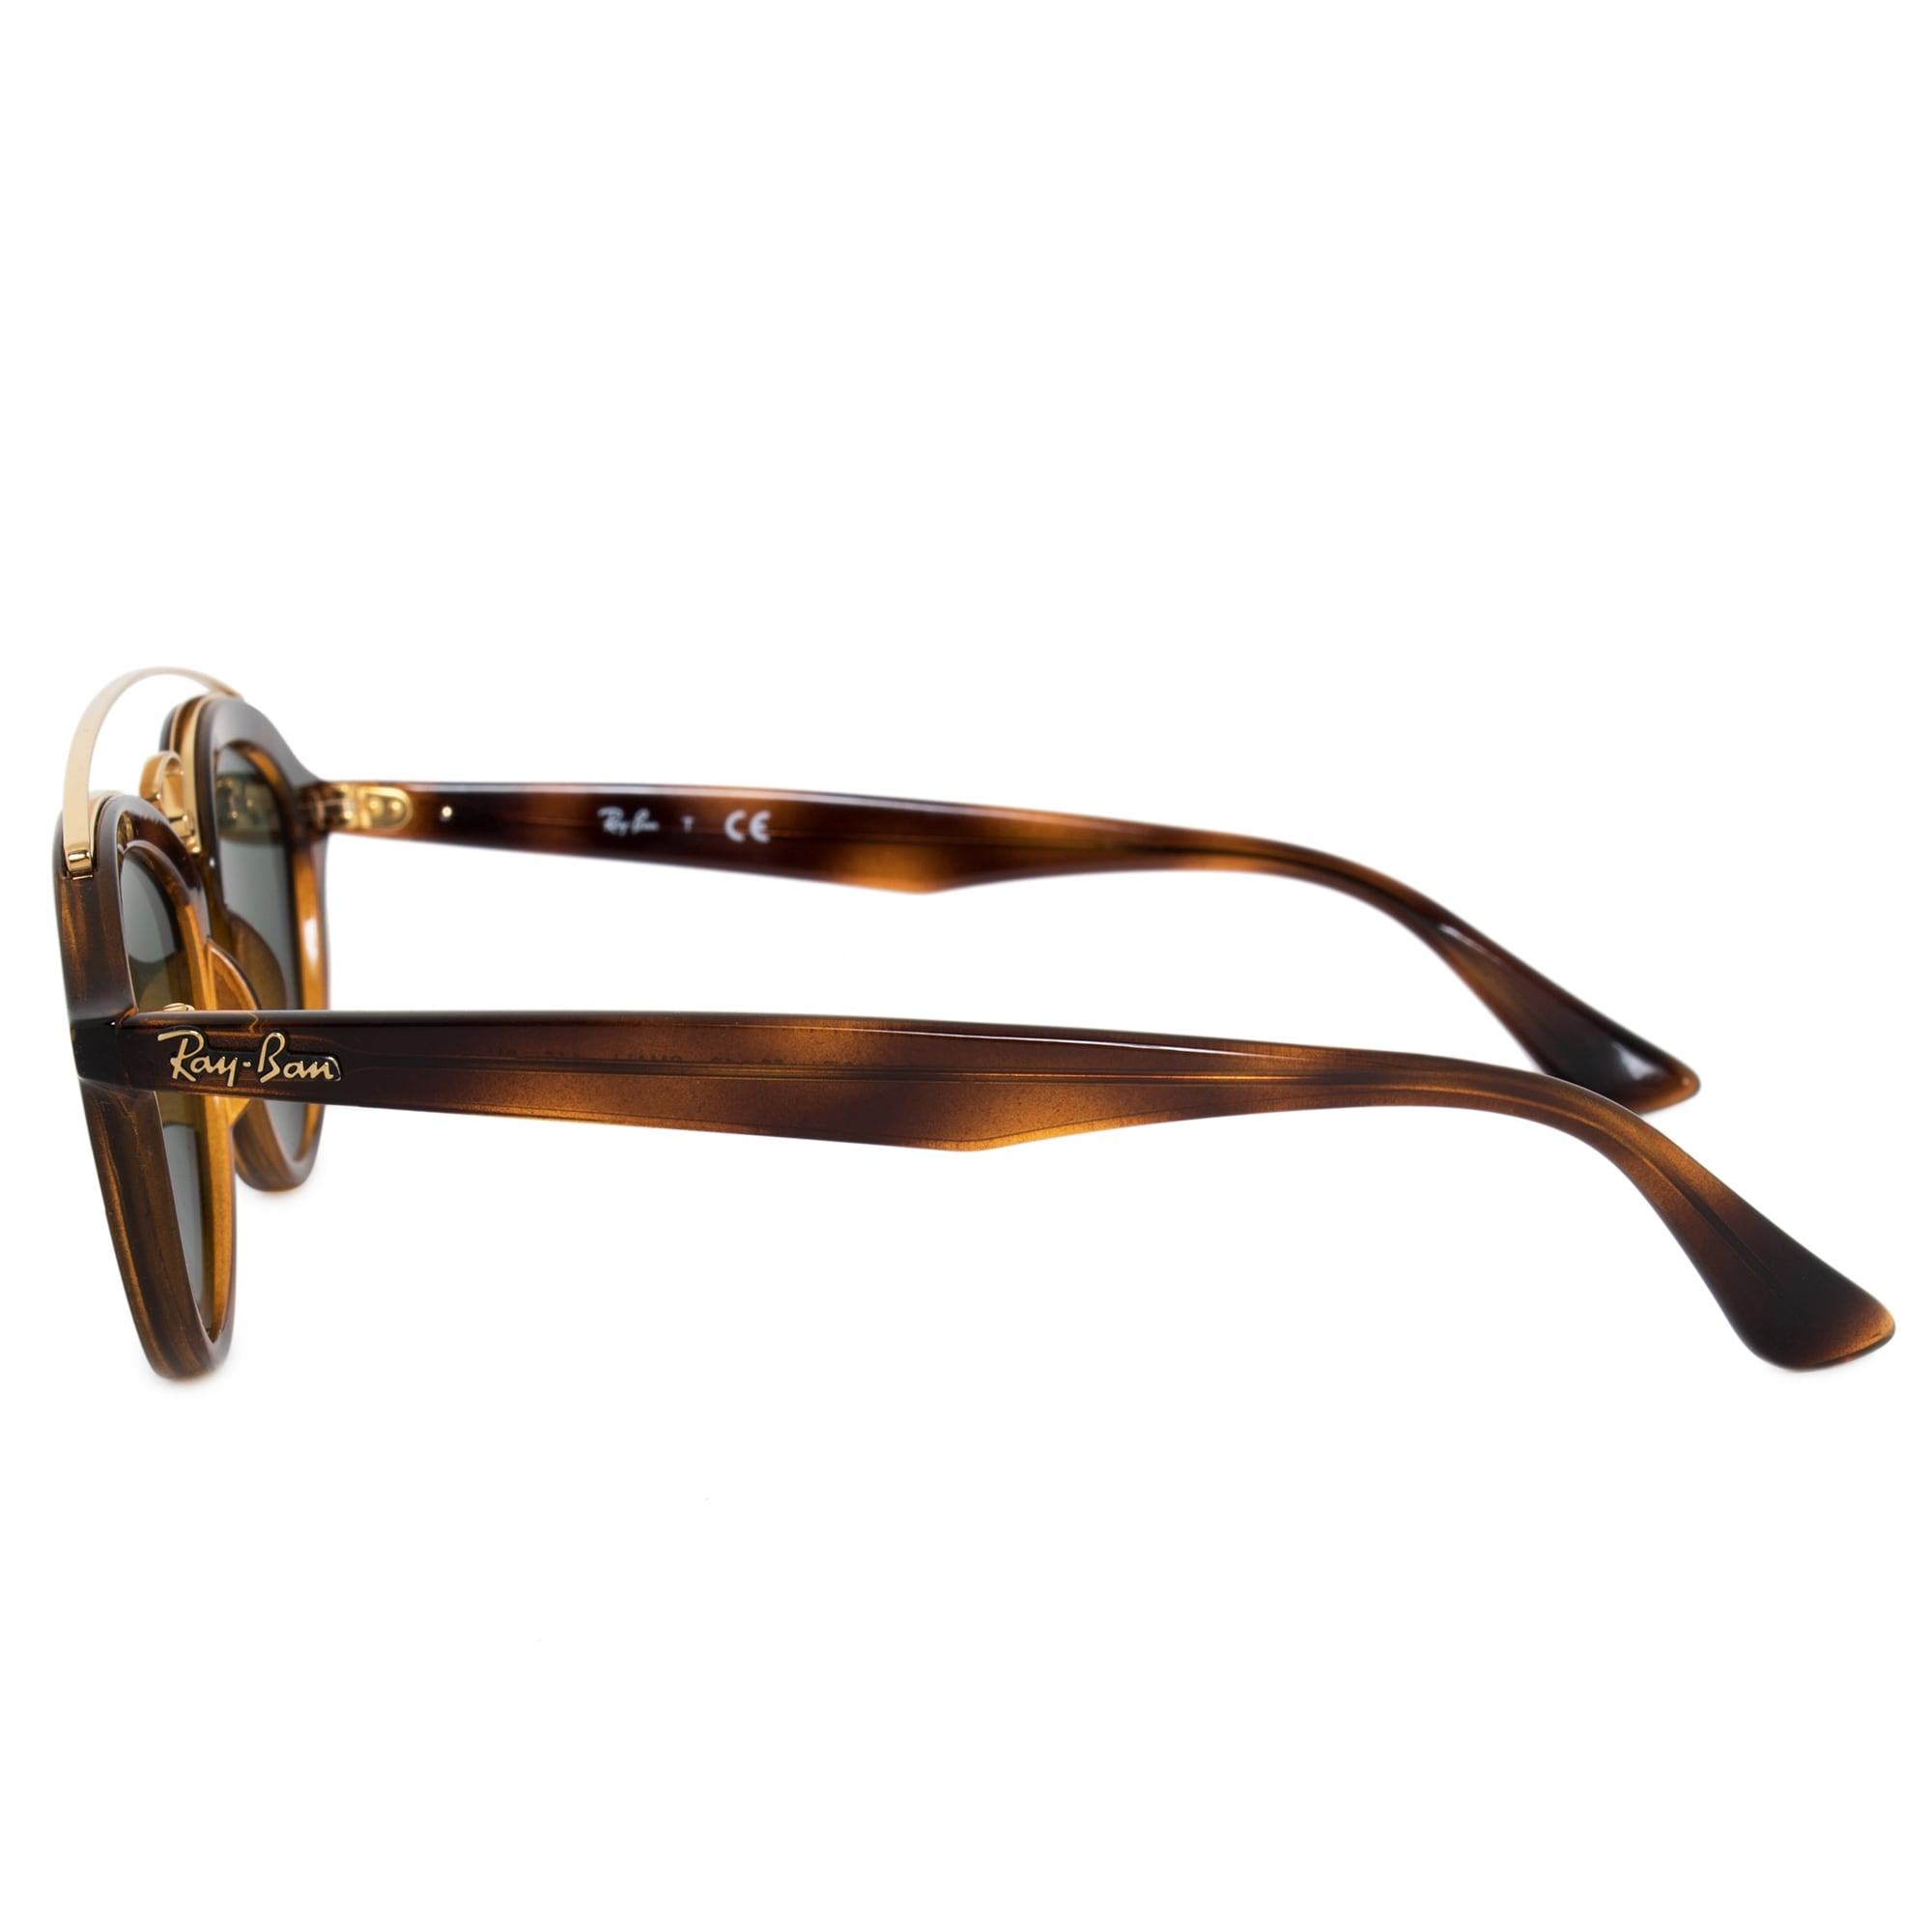 f4a97cefae Shop Ray-Ban Round Sunglasses RB4257 71071 50 - On Sale - Free Shipping  Today - Overstock - 21408975